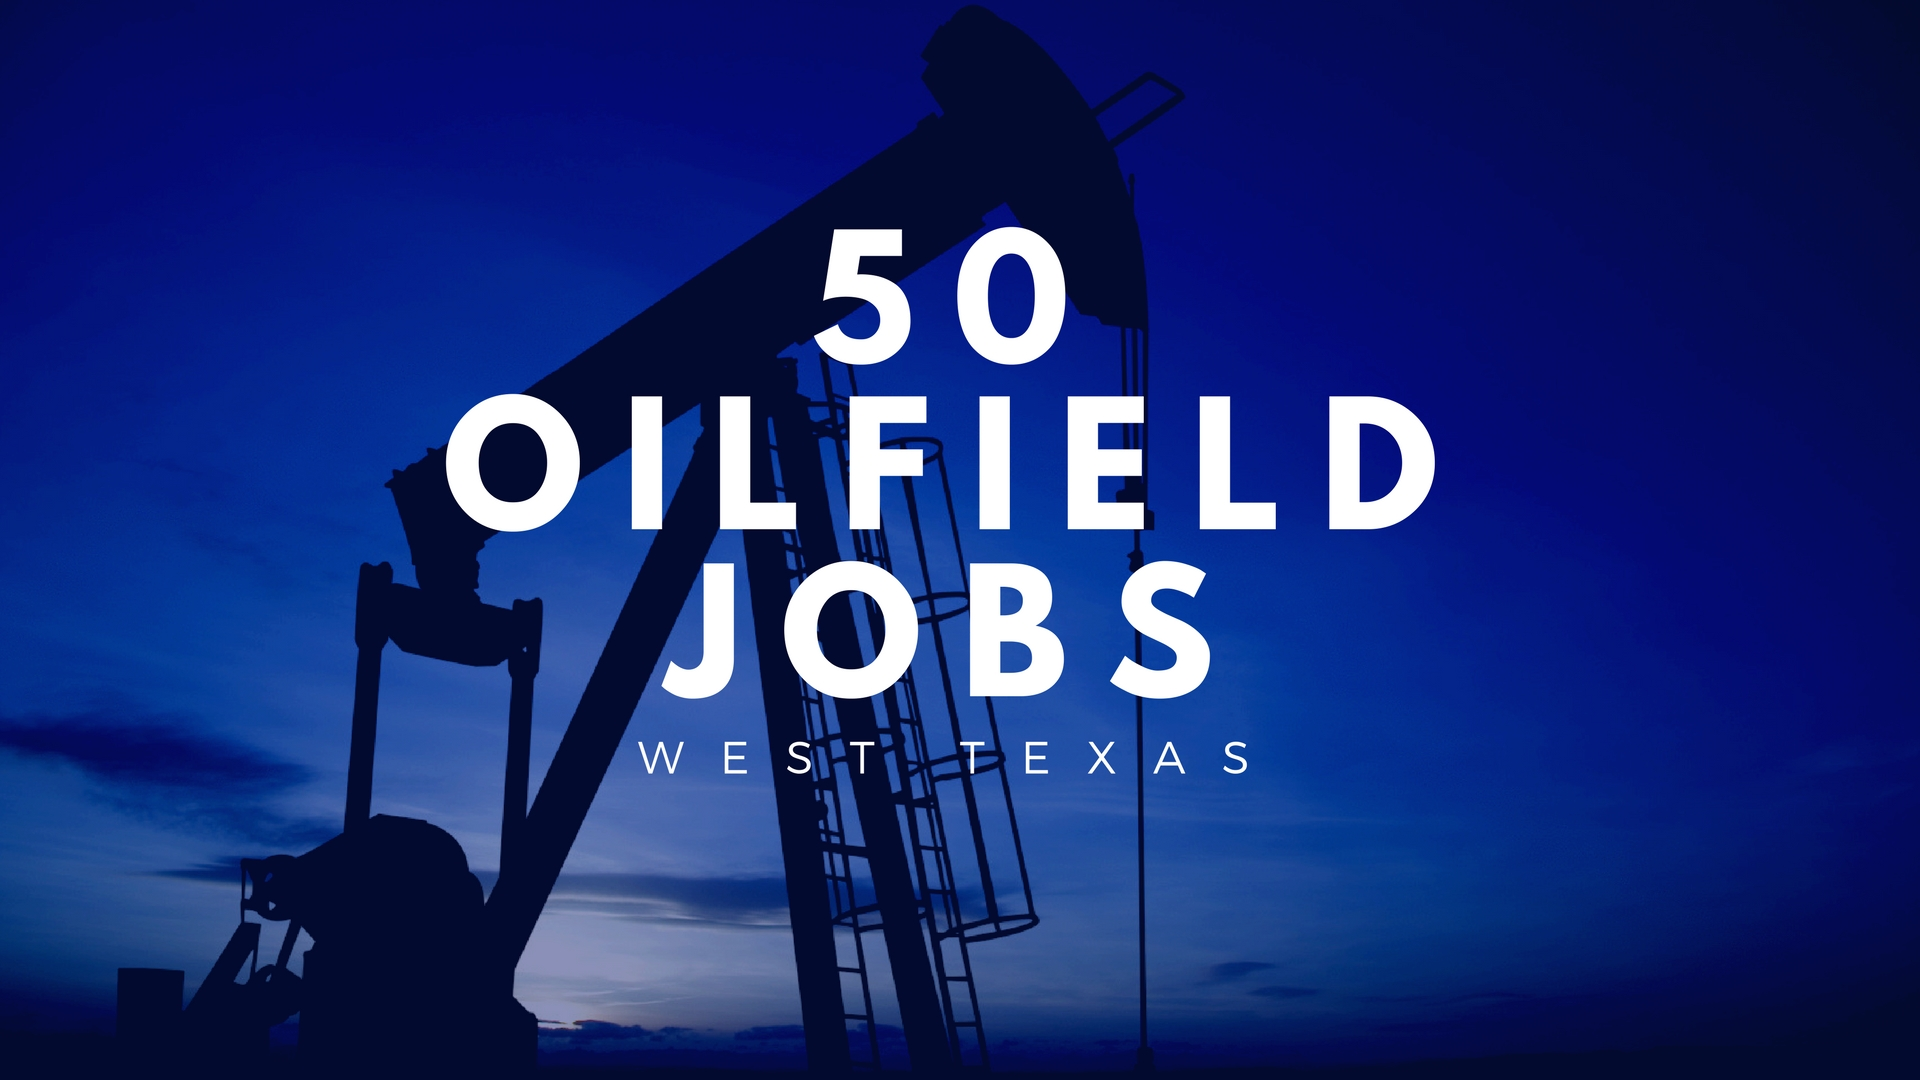 50 Oilfield Jobs in West Texas, Right Now!!! – OILFIELD1